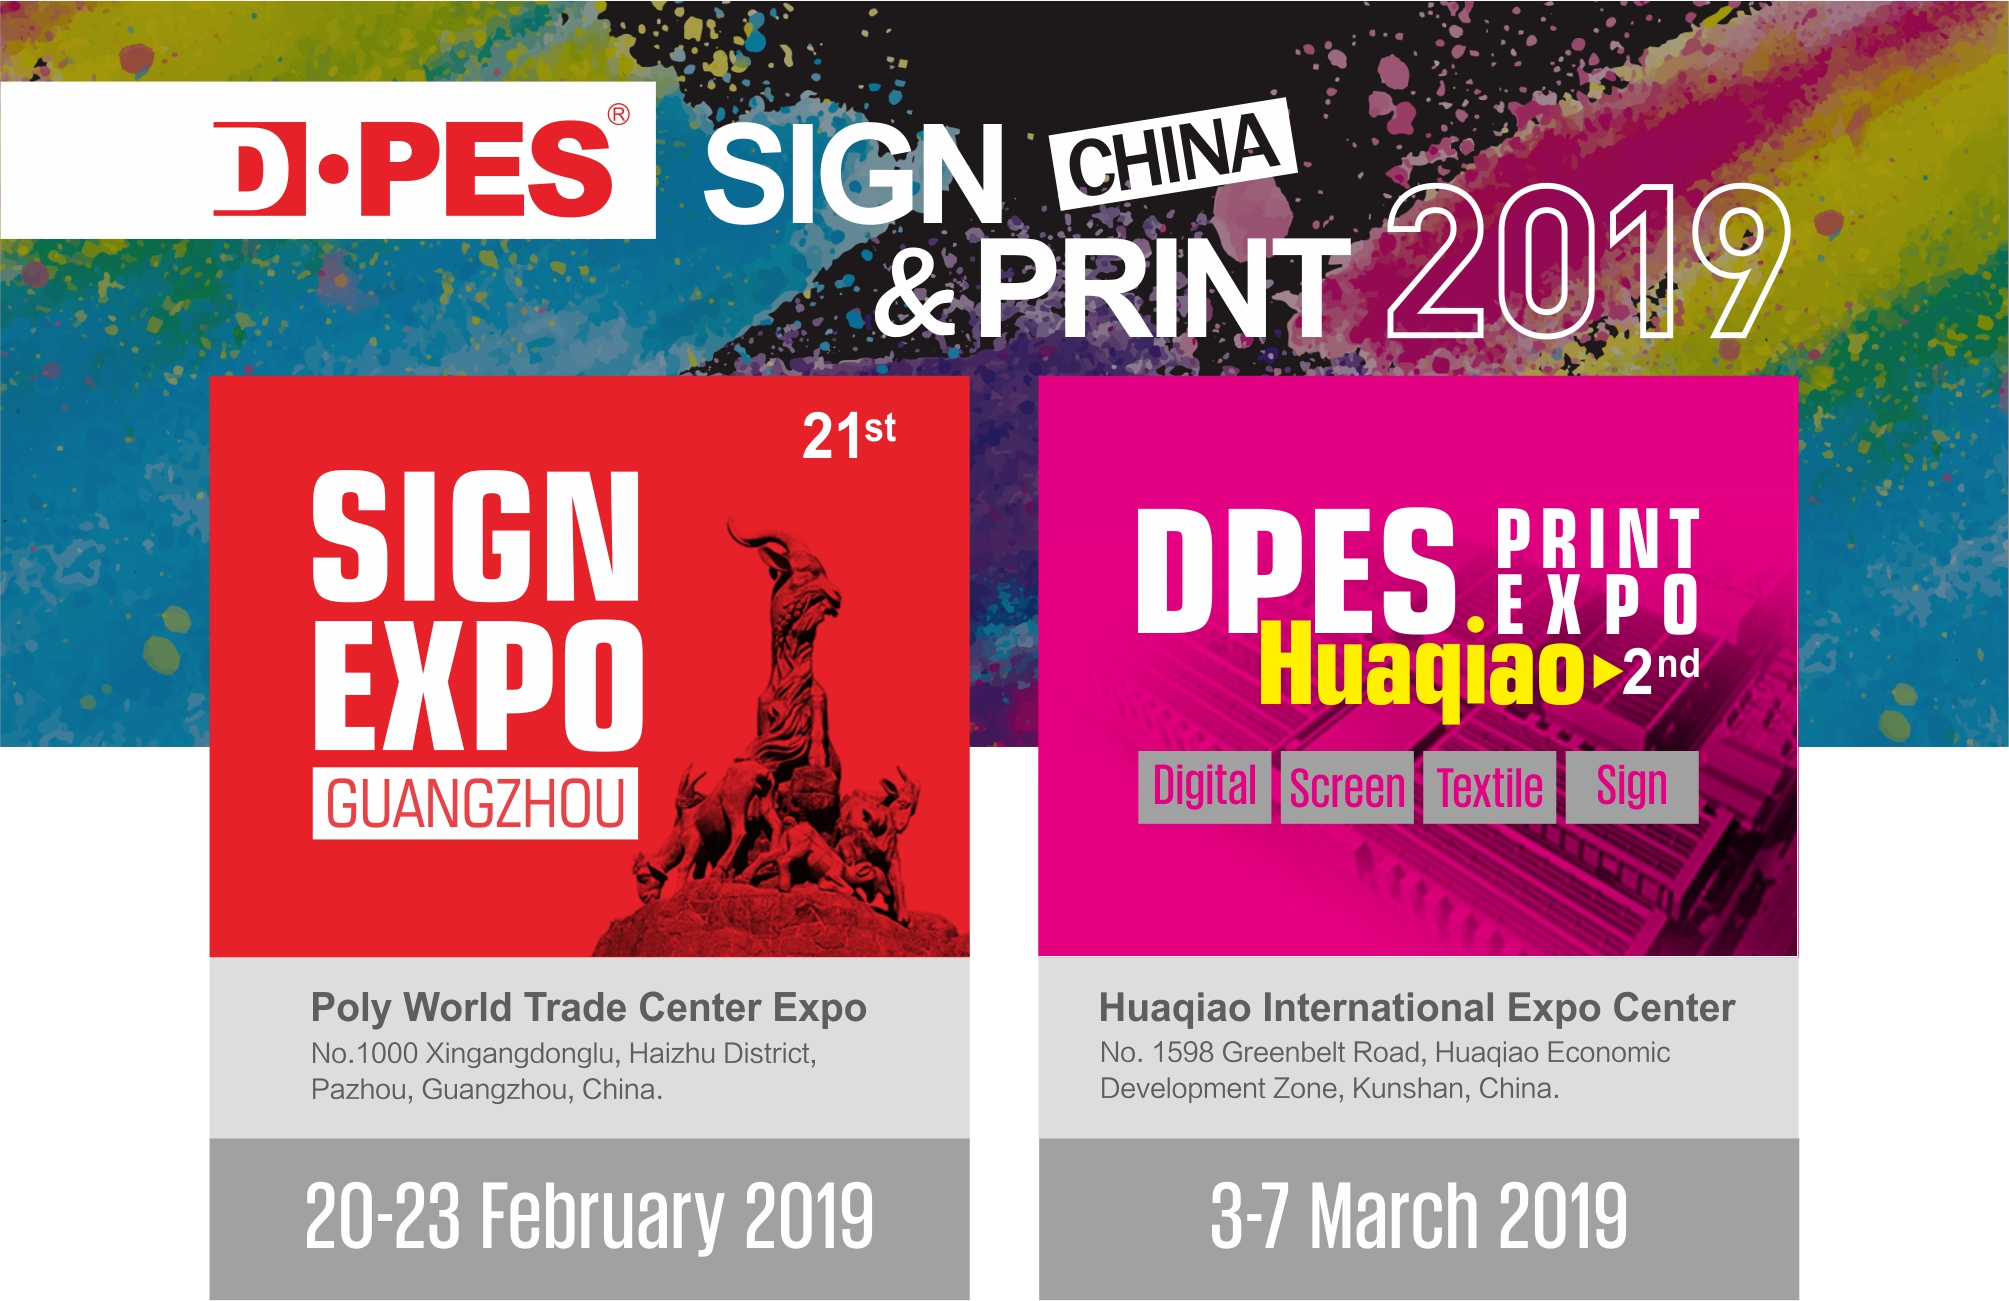 Issue 1 — Plan Your Trip to DPES 2019